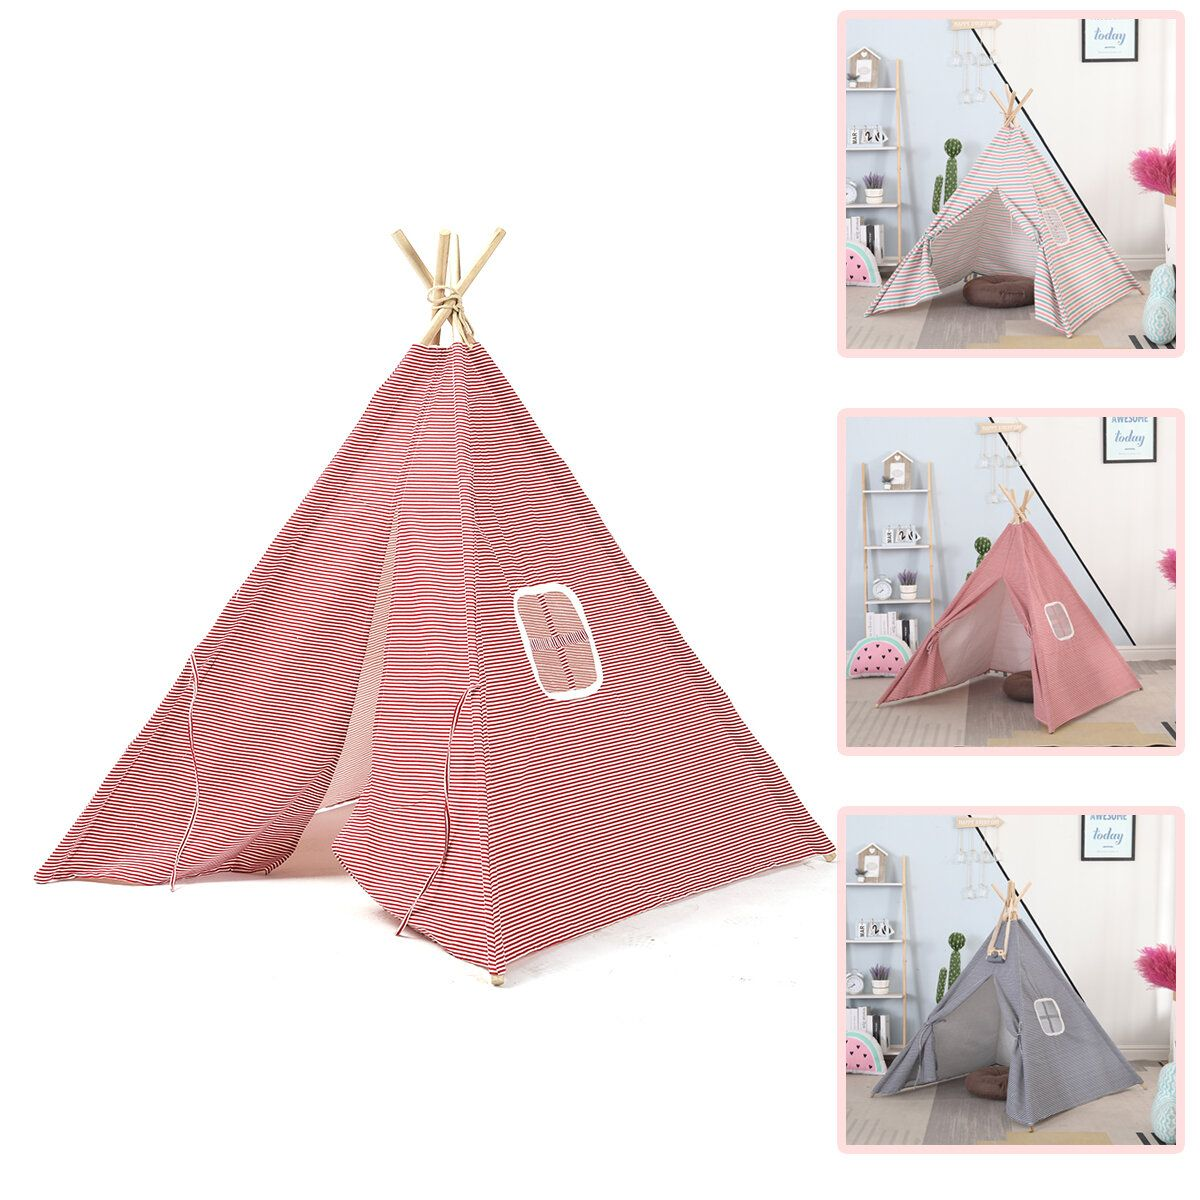 Waterproof Portable Tent Backpacking Outing Camping Tabernacle for Outdoor Picnic Tool